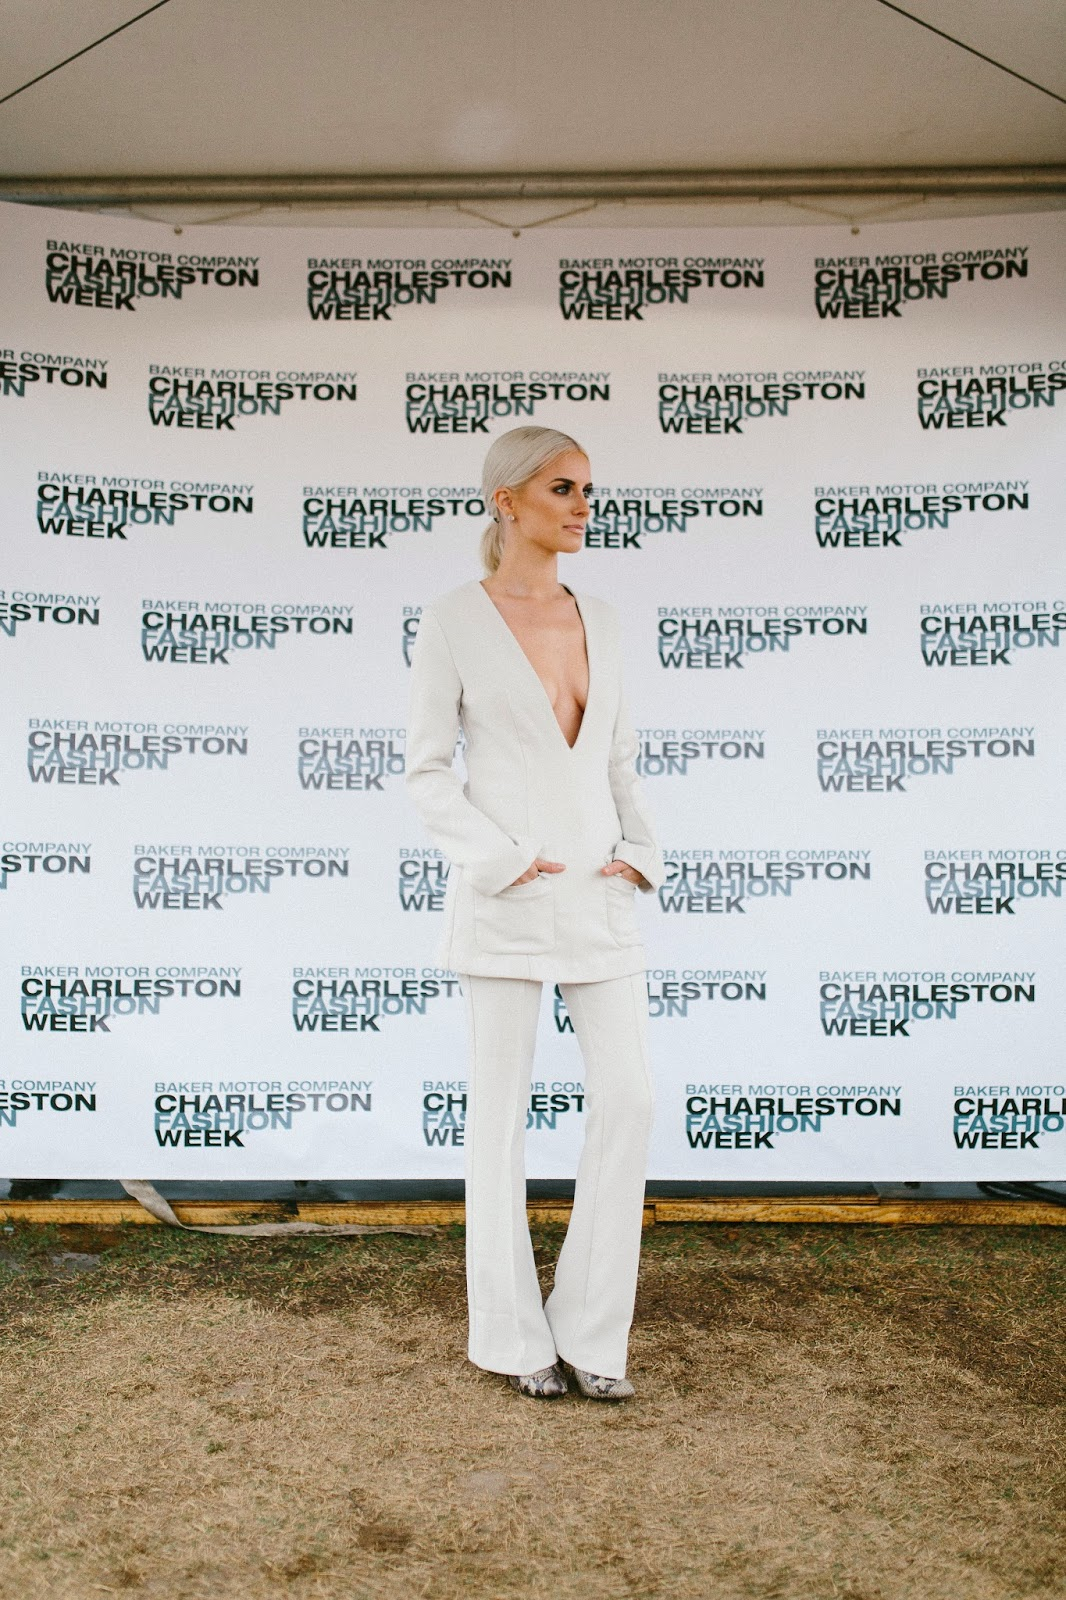 Charleston Fashion Week 2015 street style Charleston Fashion Blogger lifestyle beauty dannon k collard like the yogurt blog plunge neck deep v suit h&m groovy grave v-neck tunic flared pants size 2 cream white 70s style street fashion high end new york charleston fashion week 2015 trends